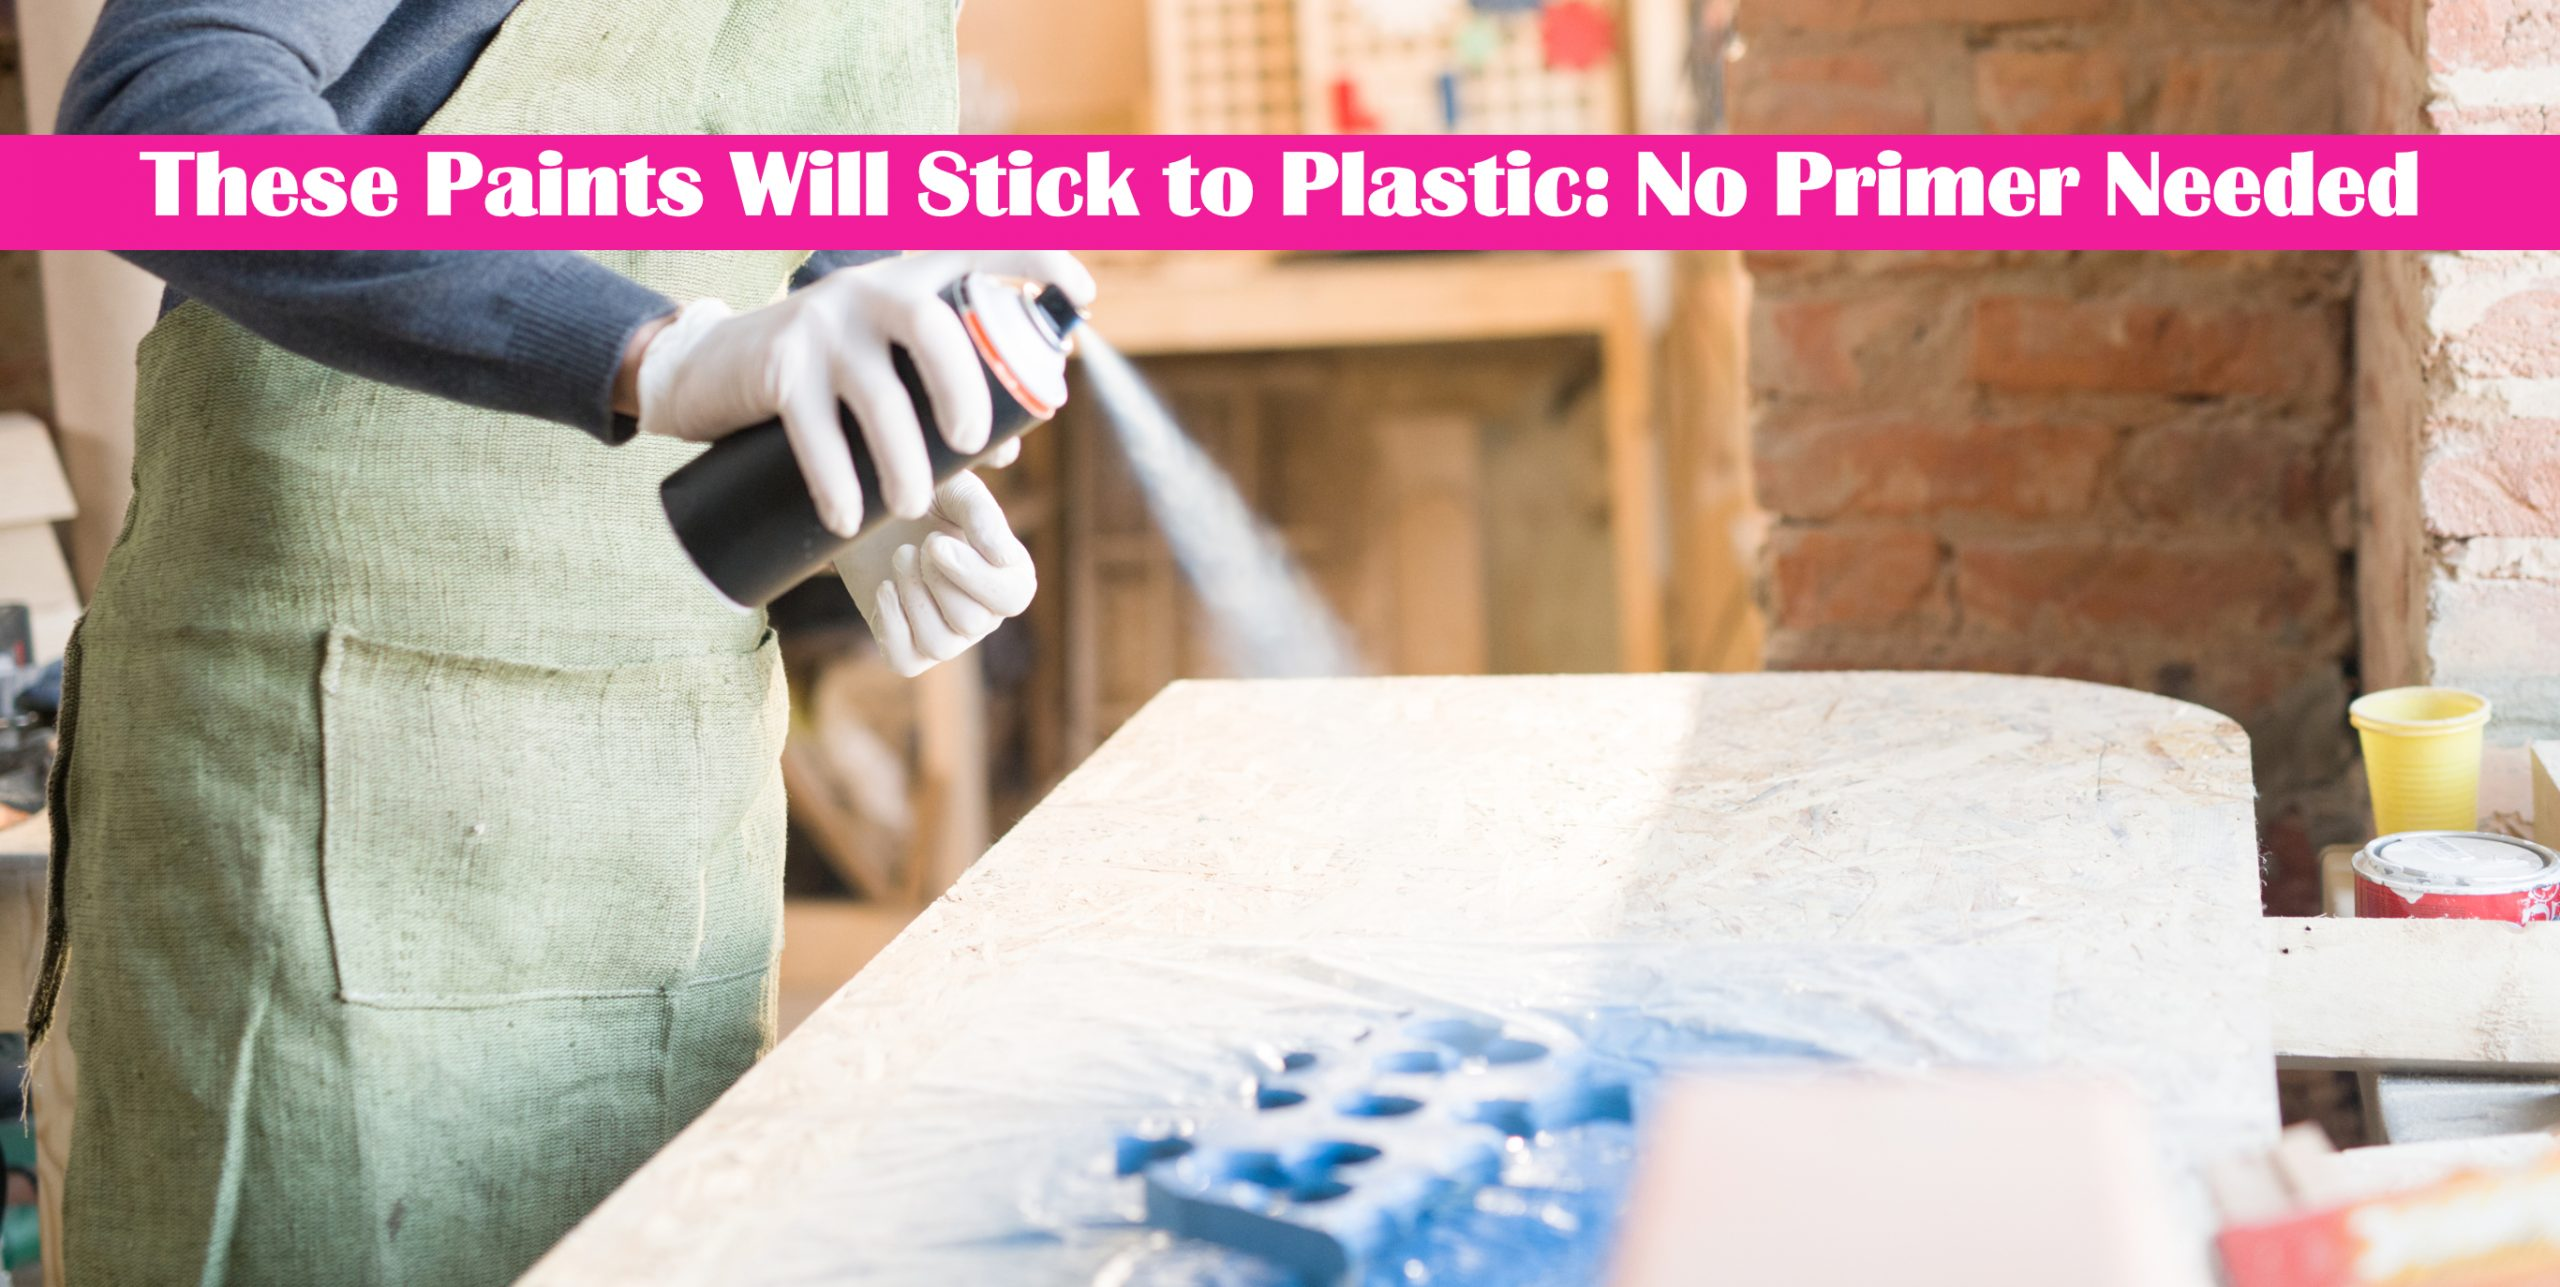 These Paints Will Stick to Plastic: No Primer Needed